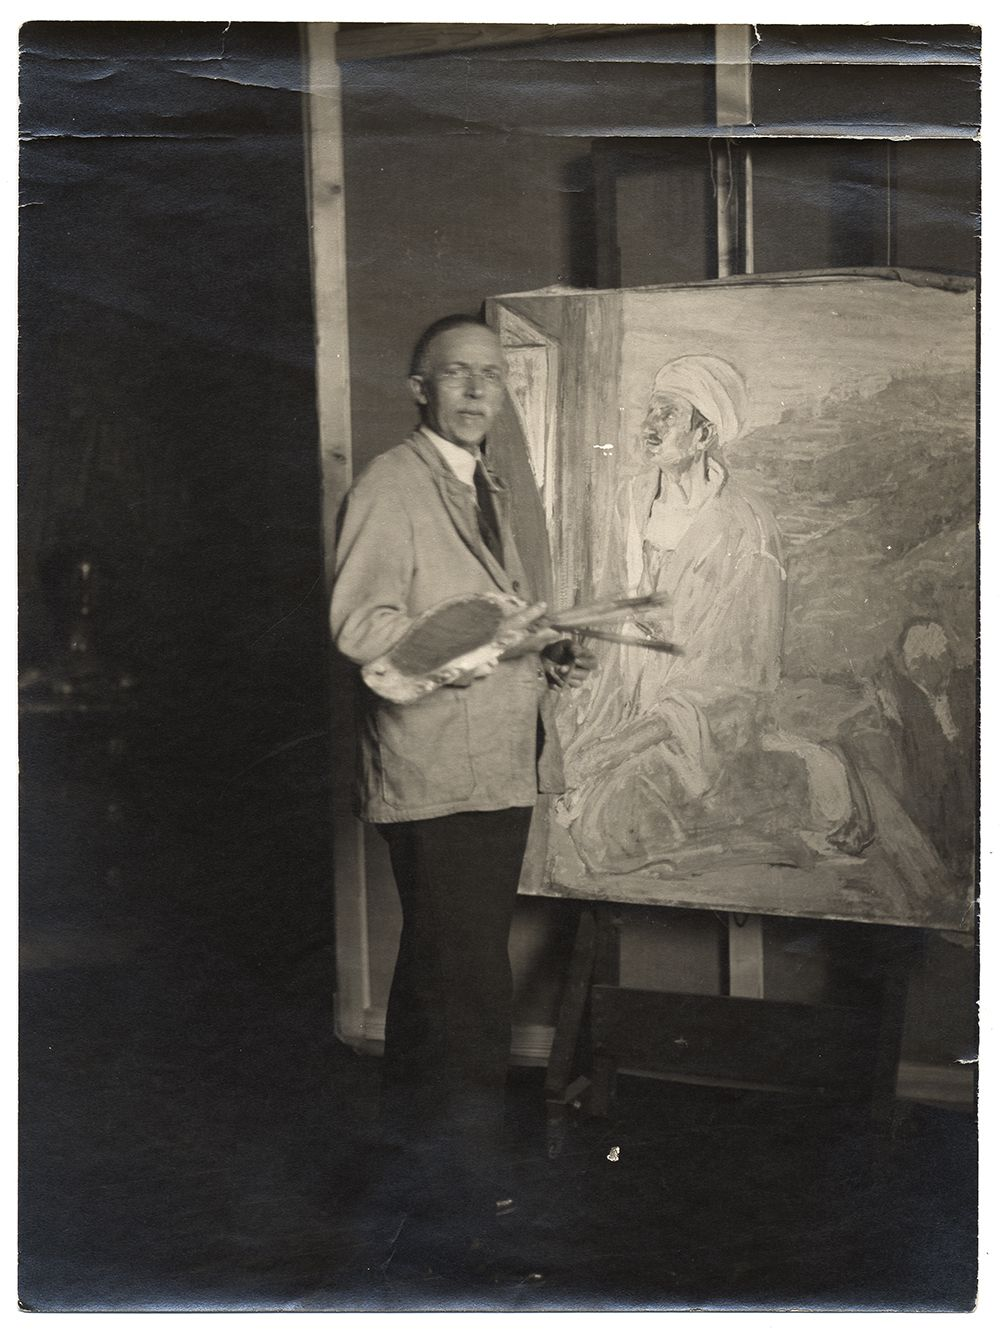 Henry Tanner in his studio next to his painting Judas.